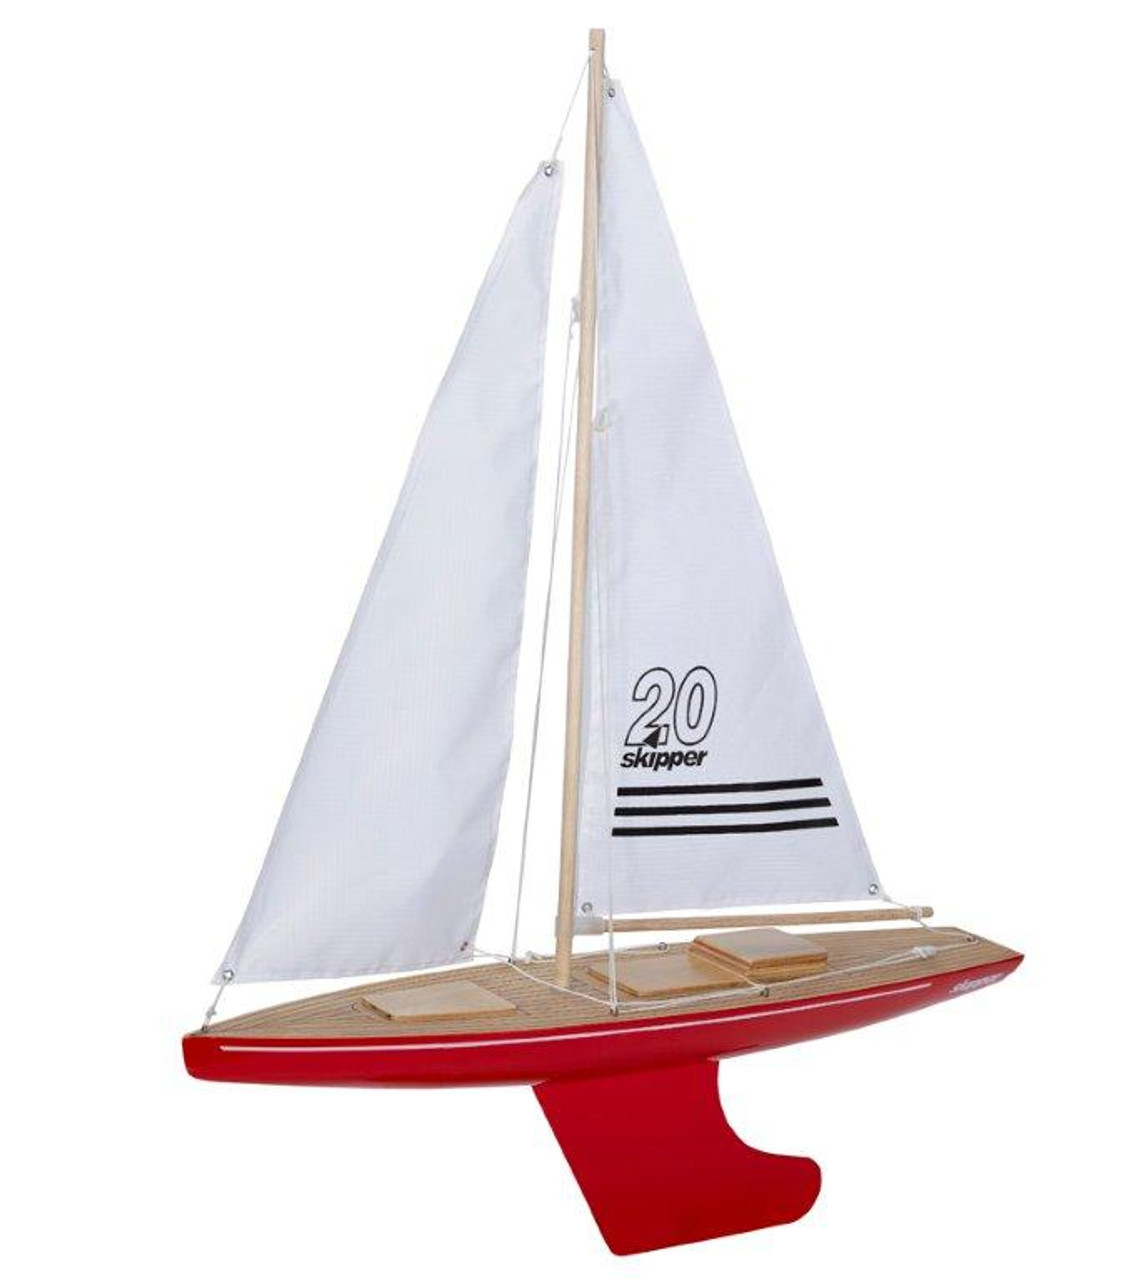 Skipper Pond Yacht - Offshore Red - 20 inch